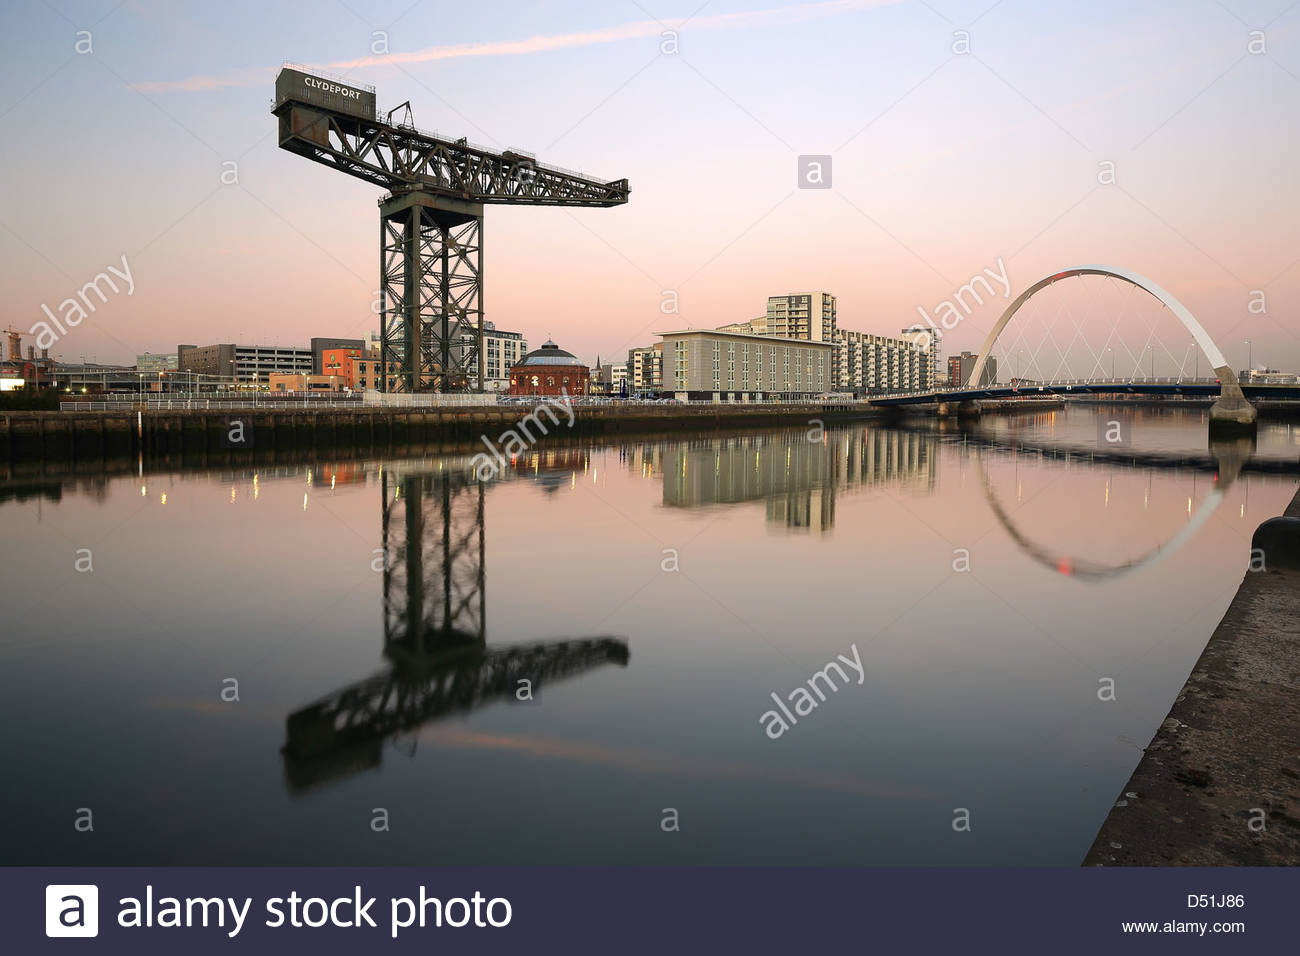 Glasgow Finnieston crane and Clyde arc bridge reflecting on the River Clyde at sunset - Stock Image